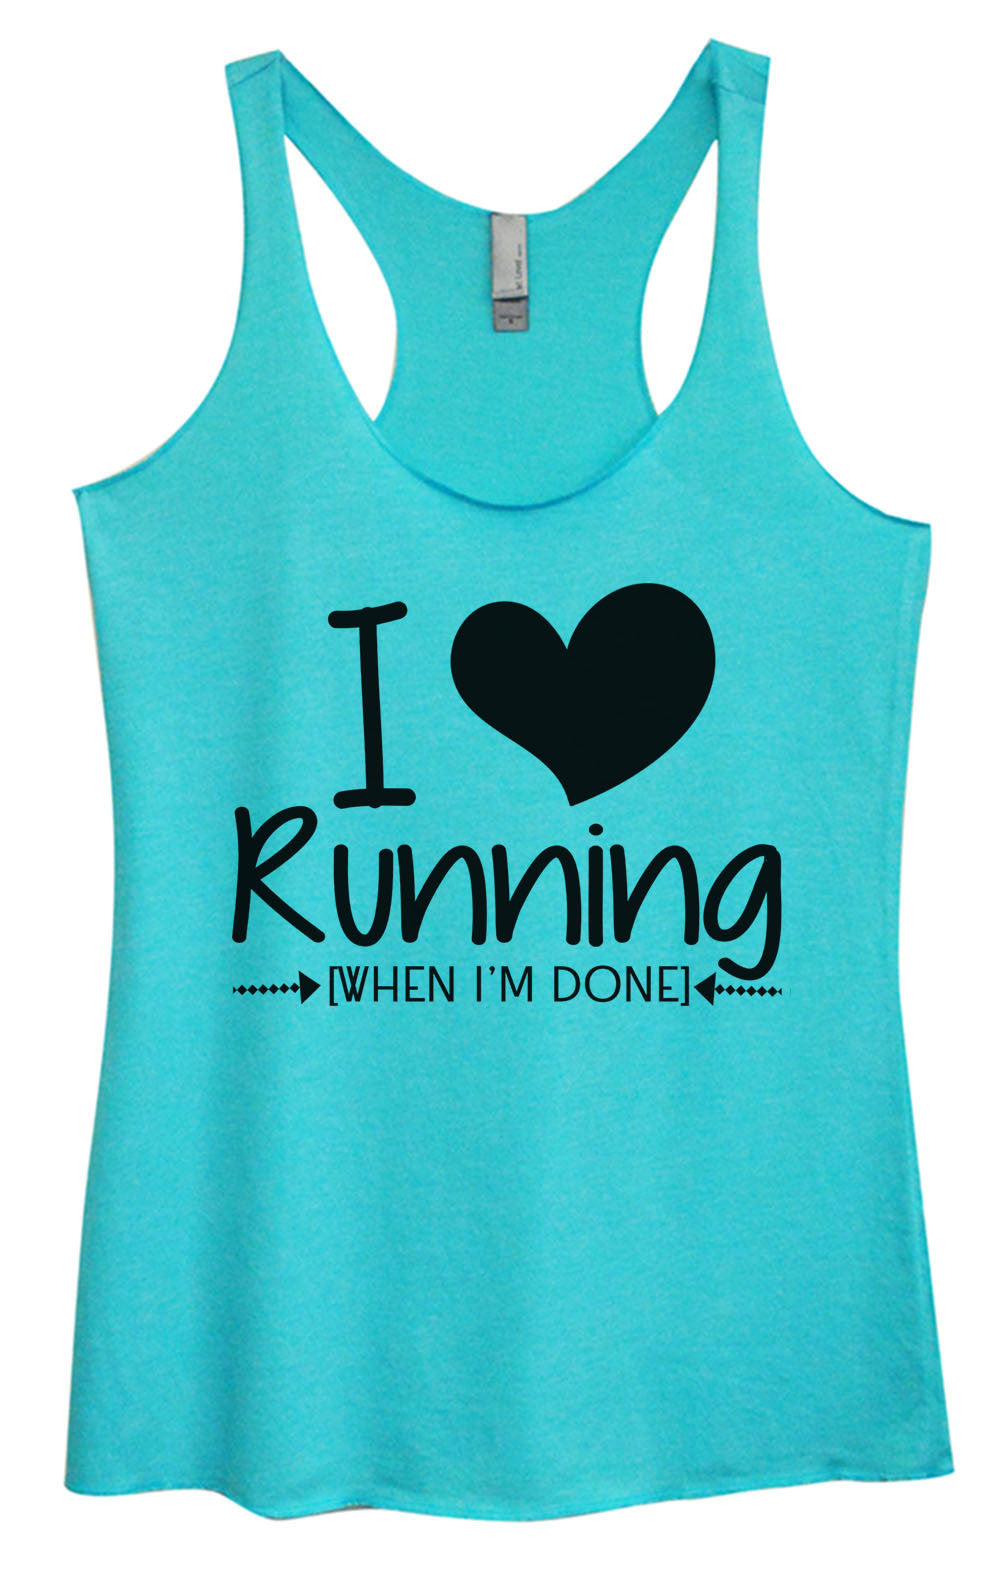 Womens Fashion Triblend Tank Top - I Love Running [When I'm Done] - Tri-1013 - Funny Shirts Tank Tops Burnouts and Triblends  - 1